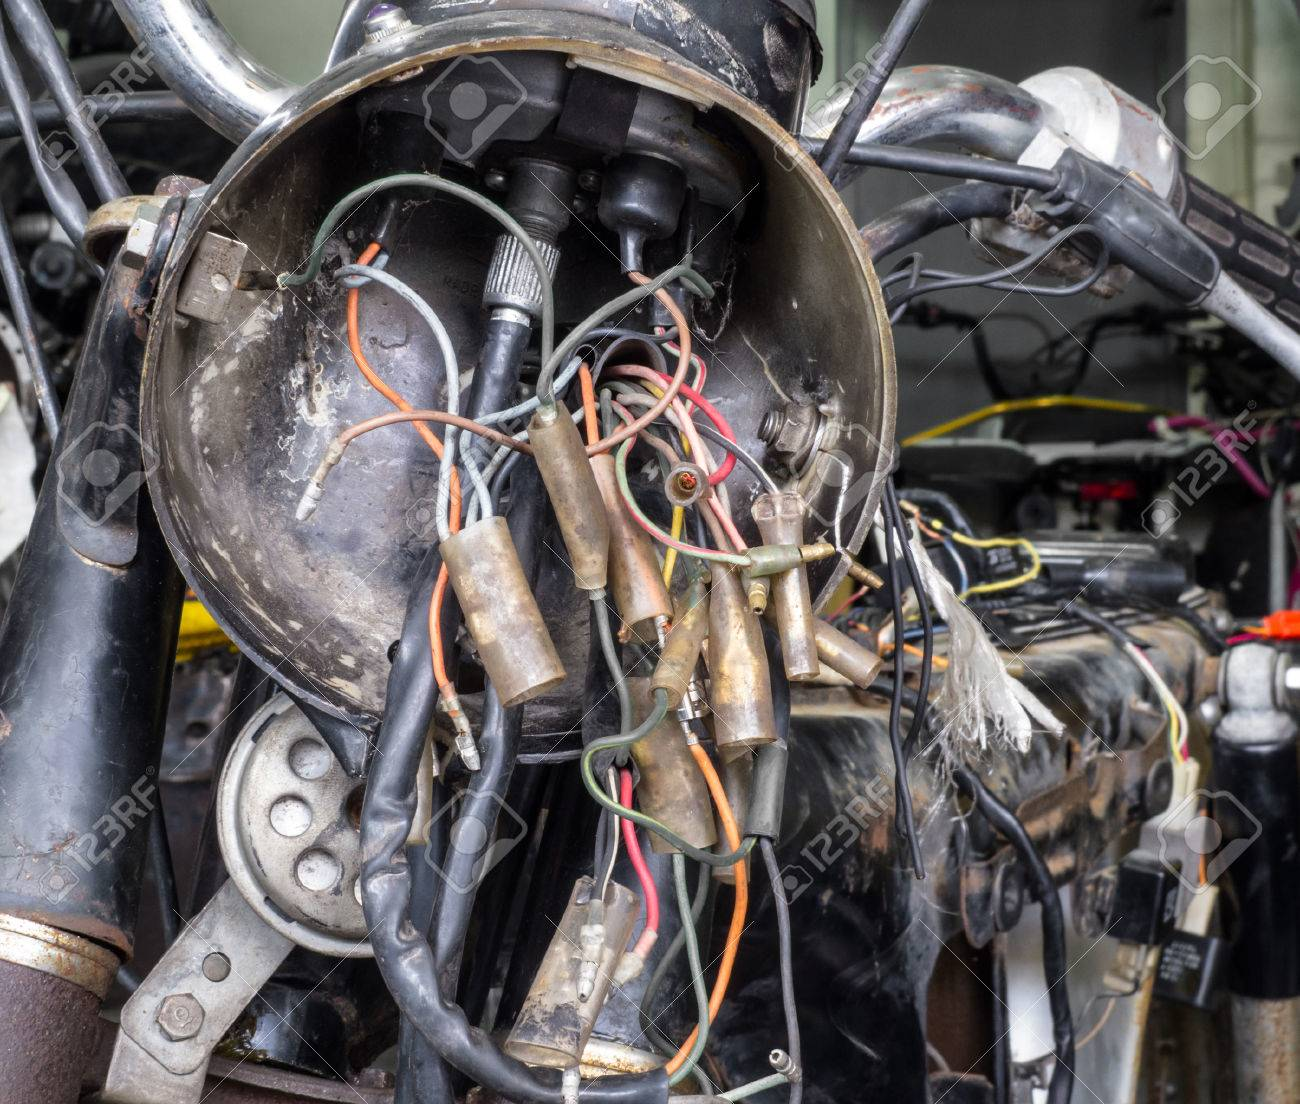 hight resolution of electric wiring of an old motorcycle headlight stock photo 54063528